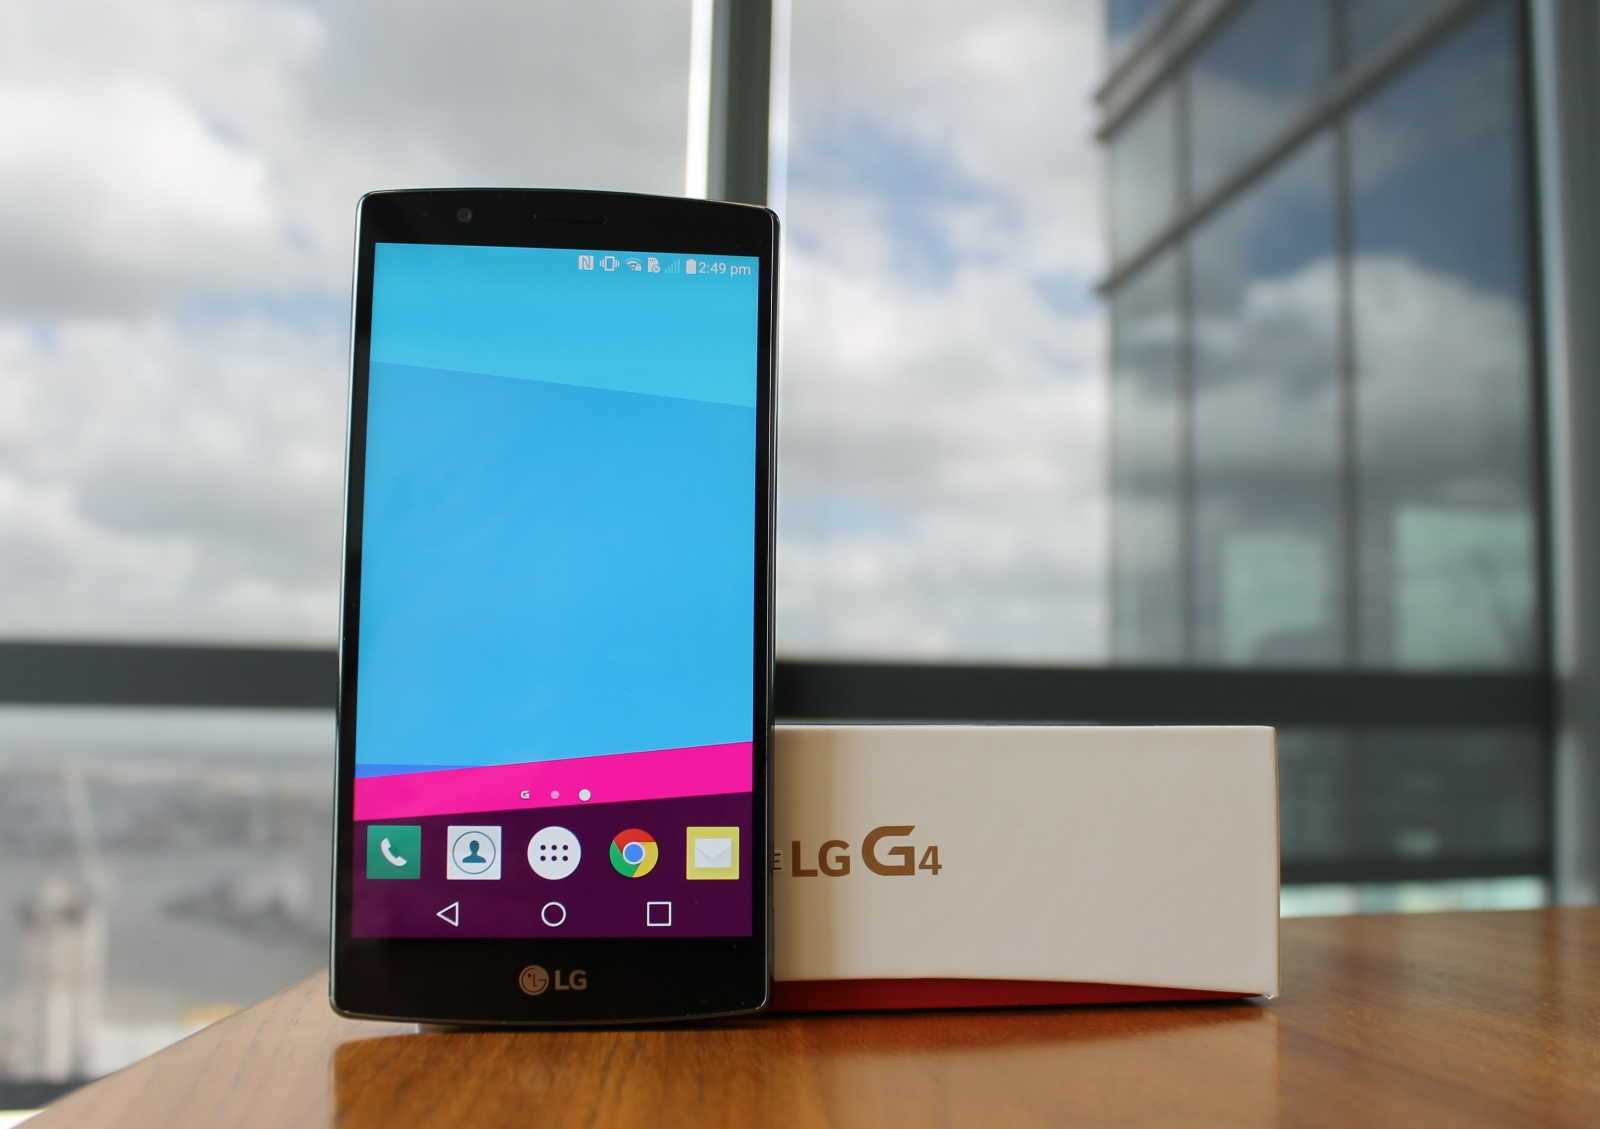 LG G4 review specs comparison